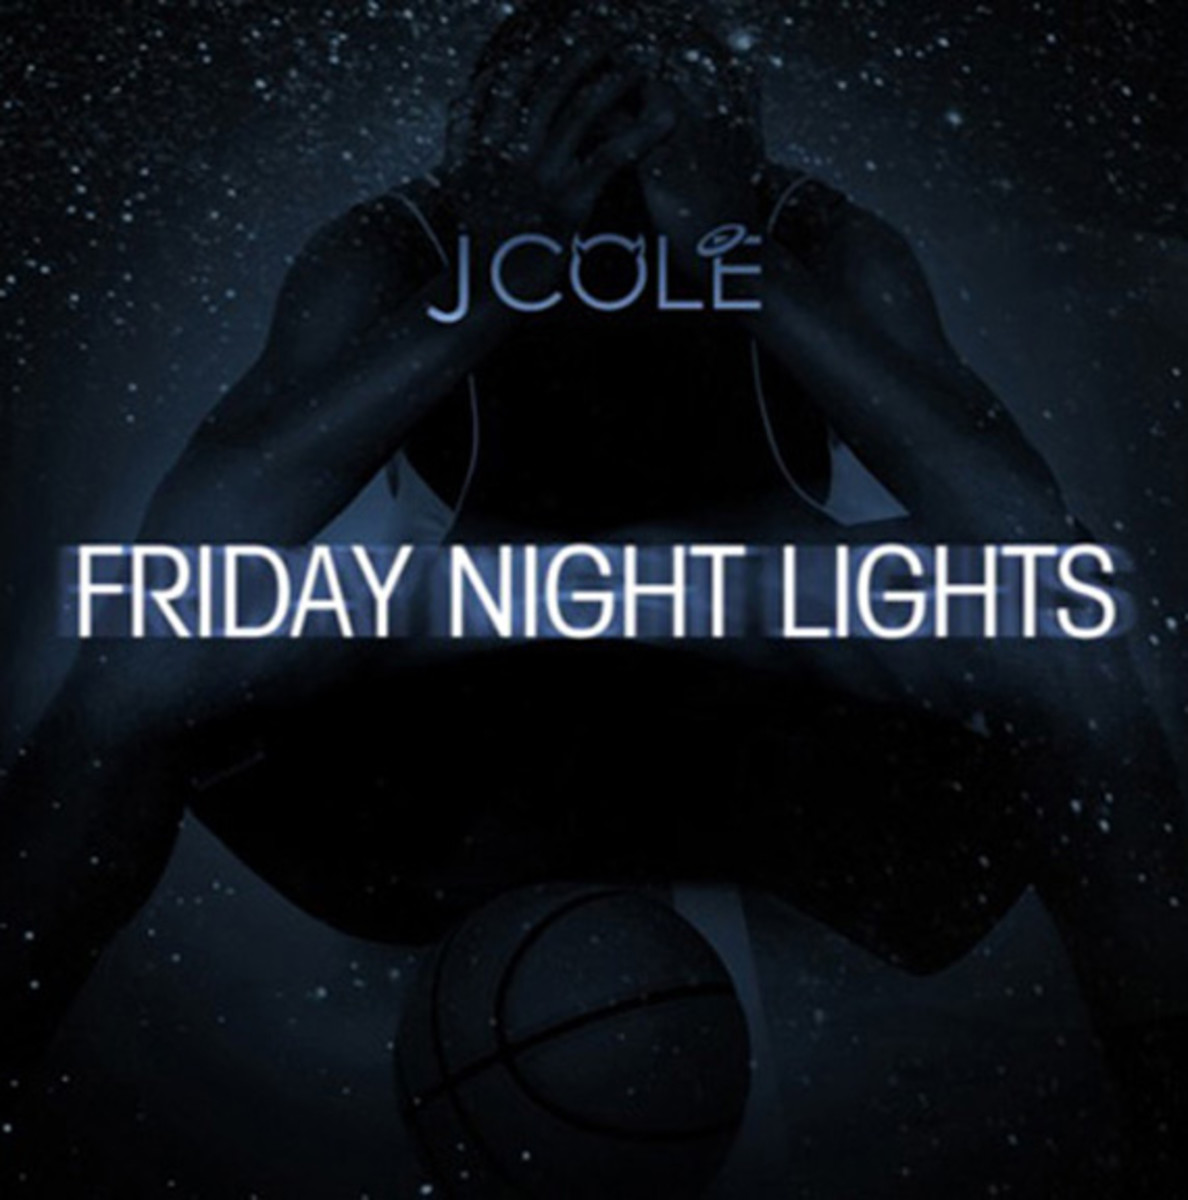 j-cole-friday-night-lights-resized